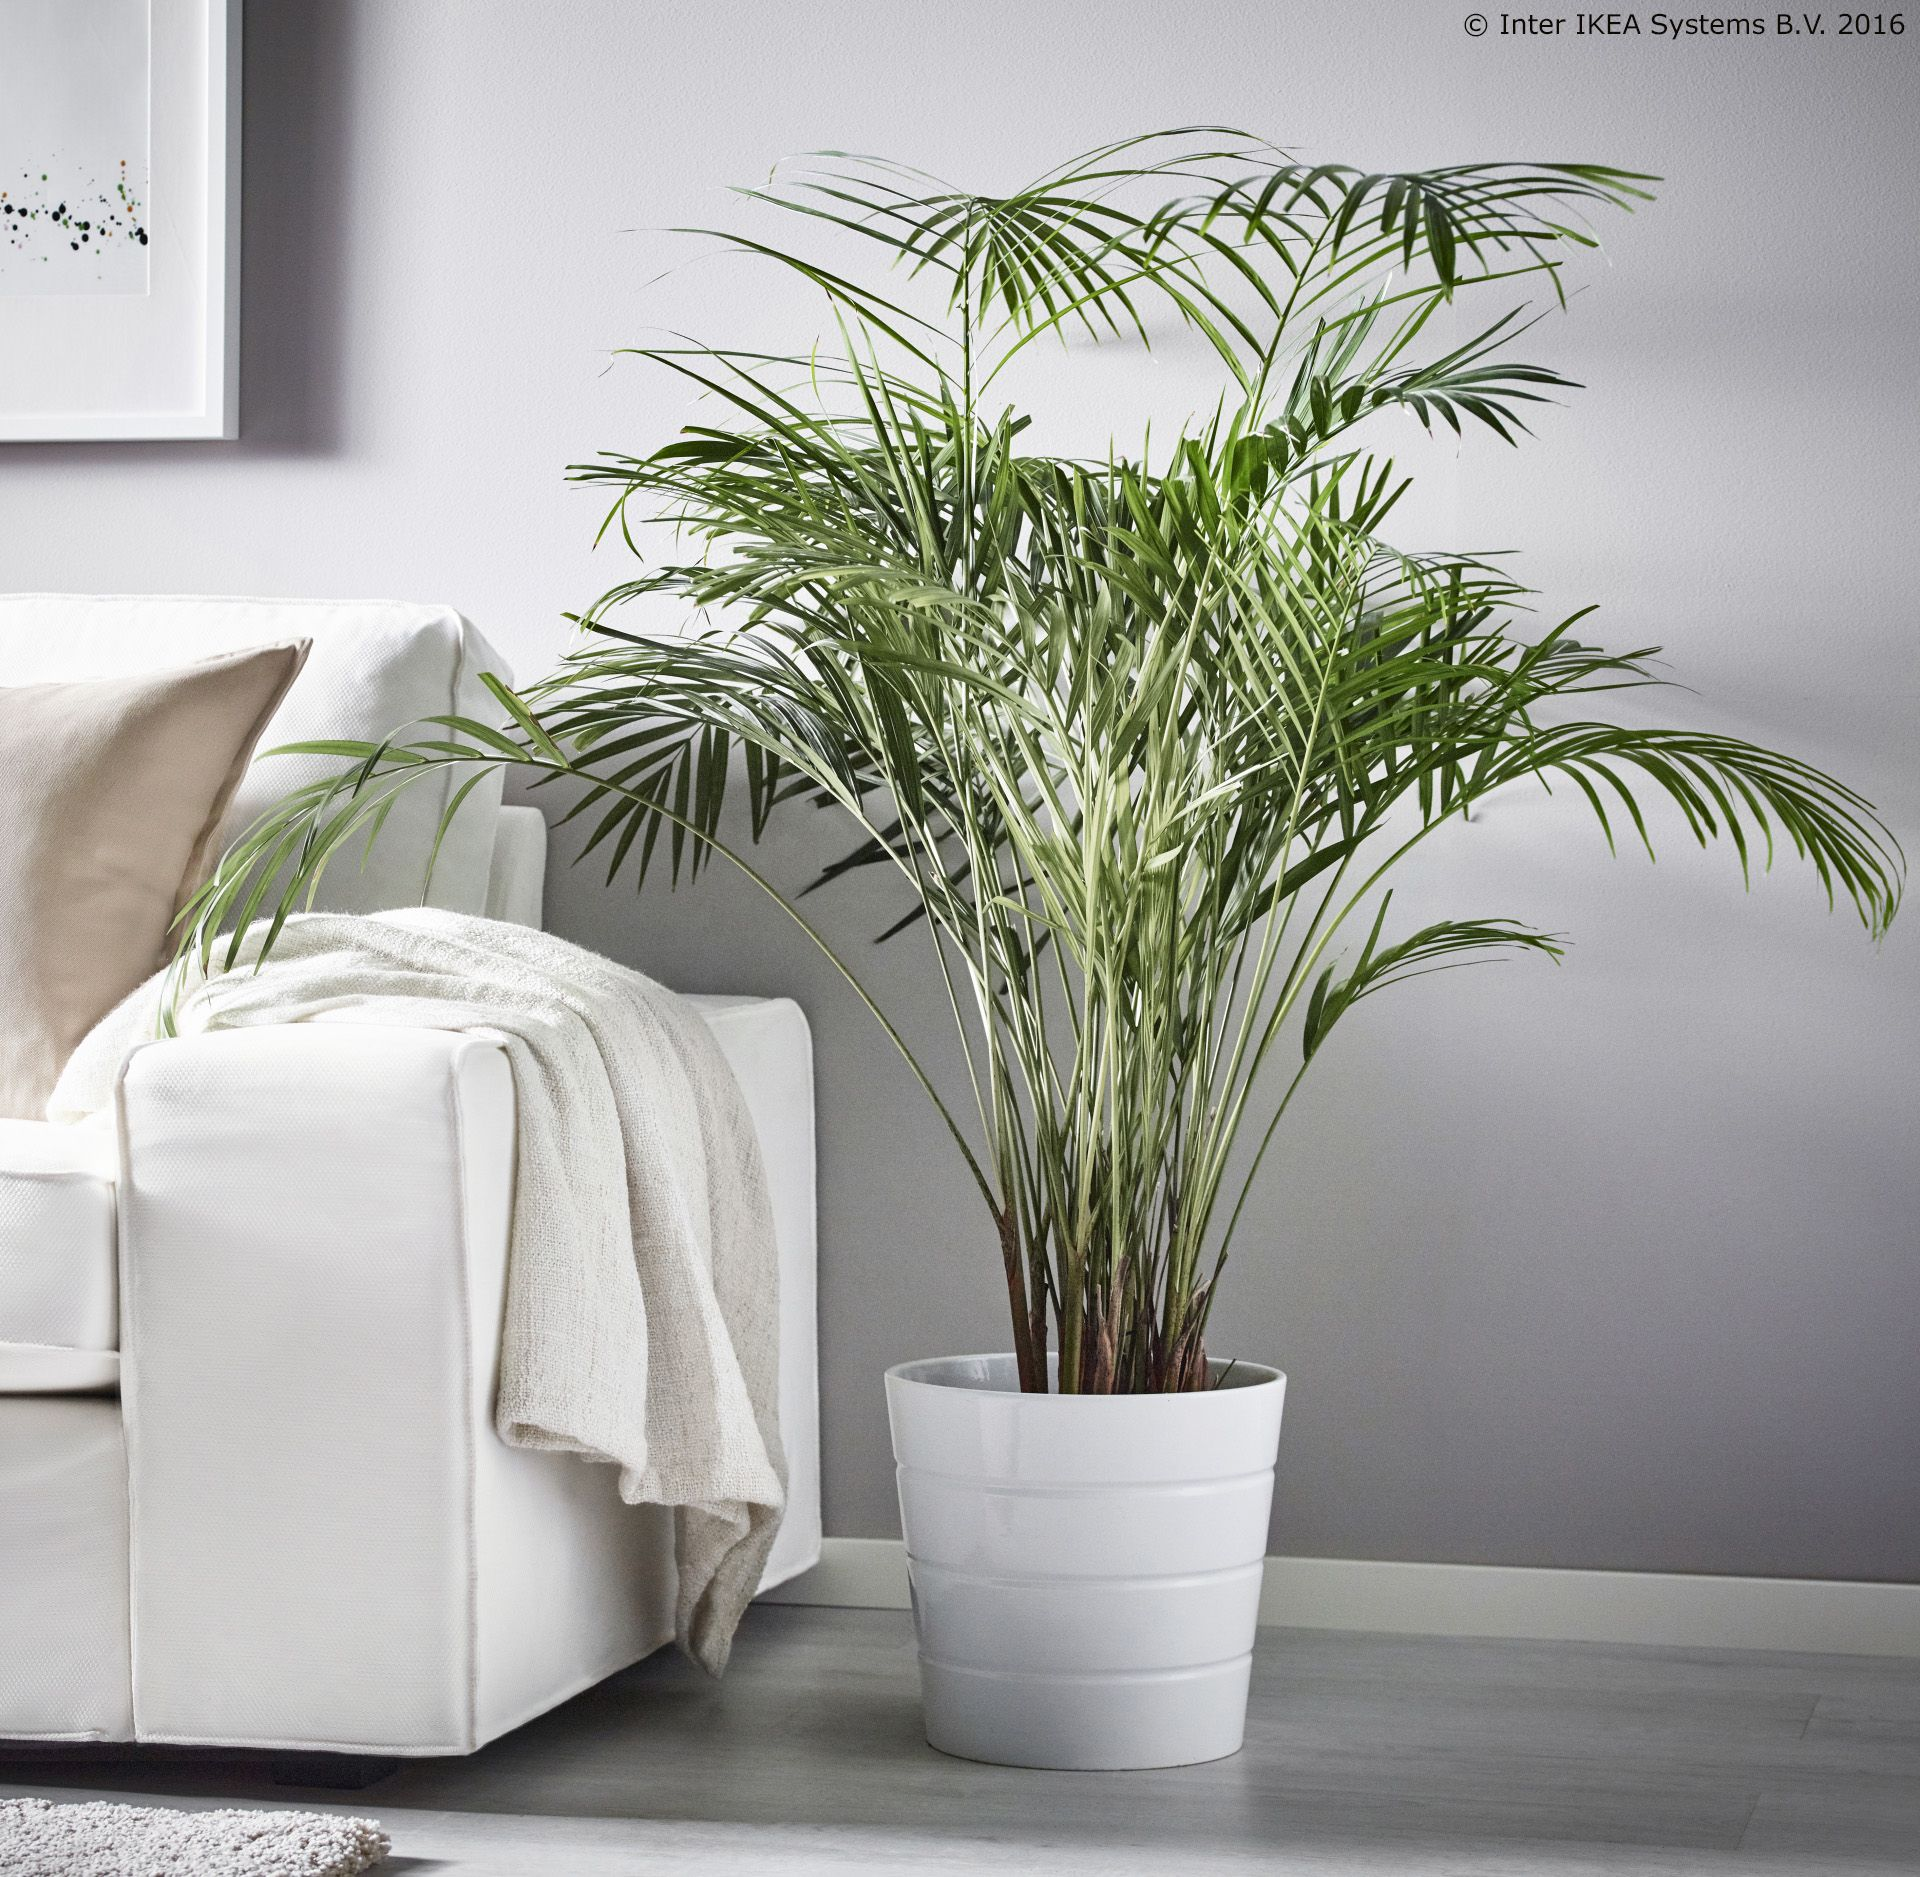 Chrysalidocarpus Space For Life Dypsis Lutescens Lončanica Areka Palma Want Ikea Plants Ikea